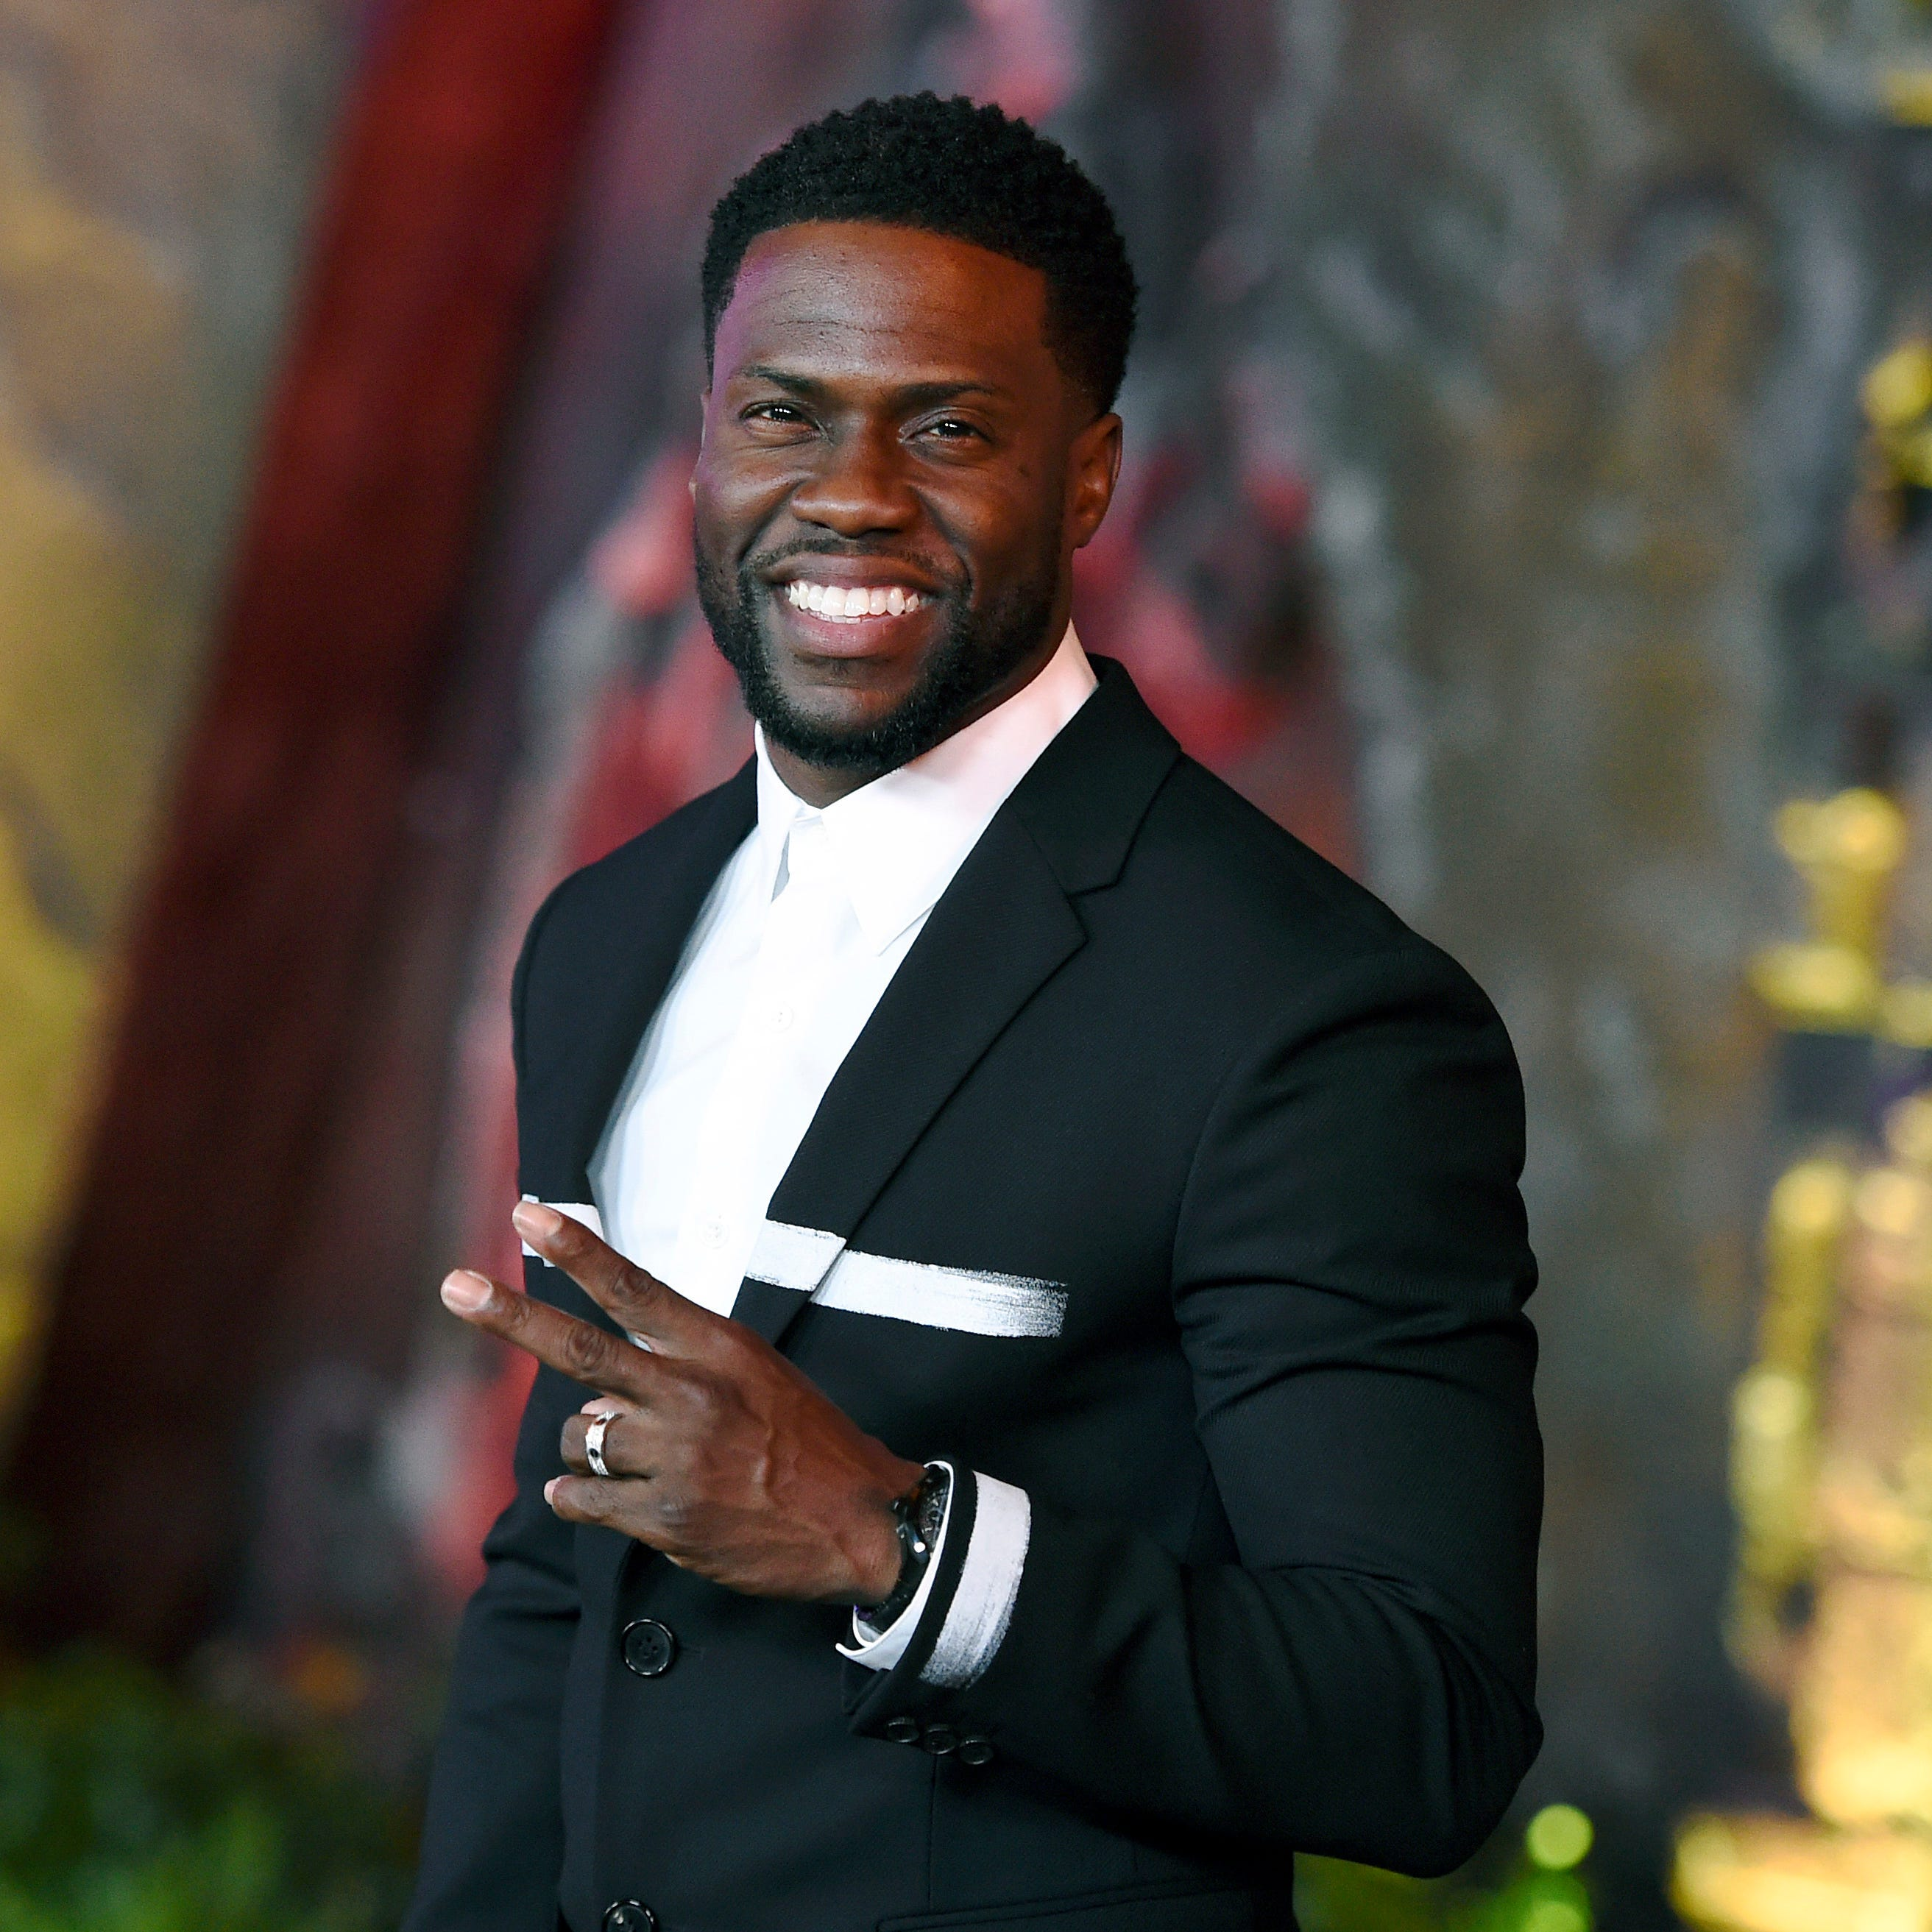 Kevin Hart gets 'Irresponsible' at the Bay Center | What's up this weekend